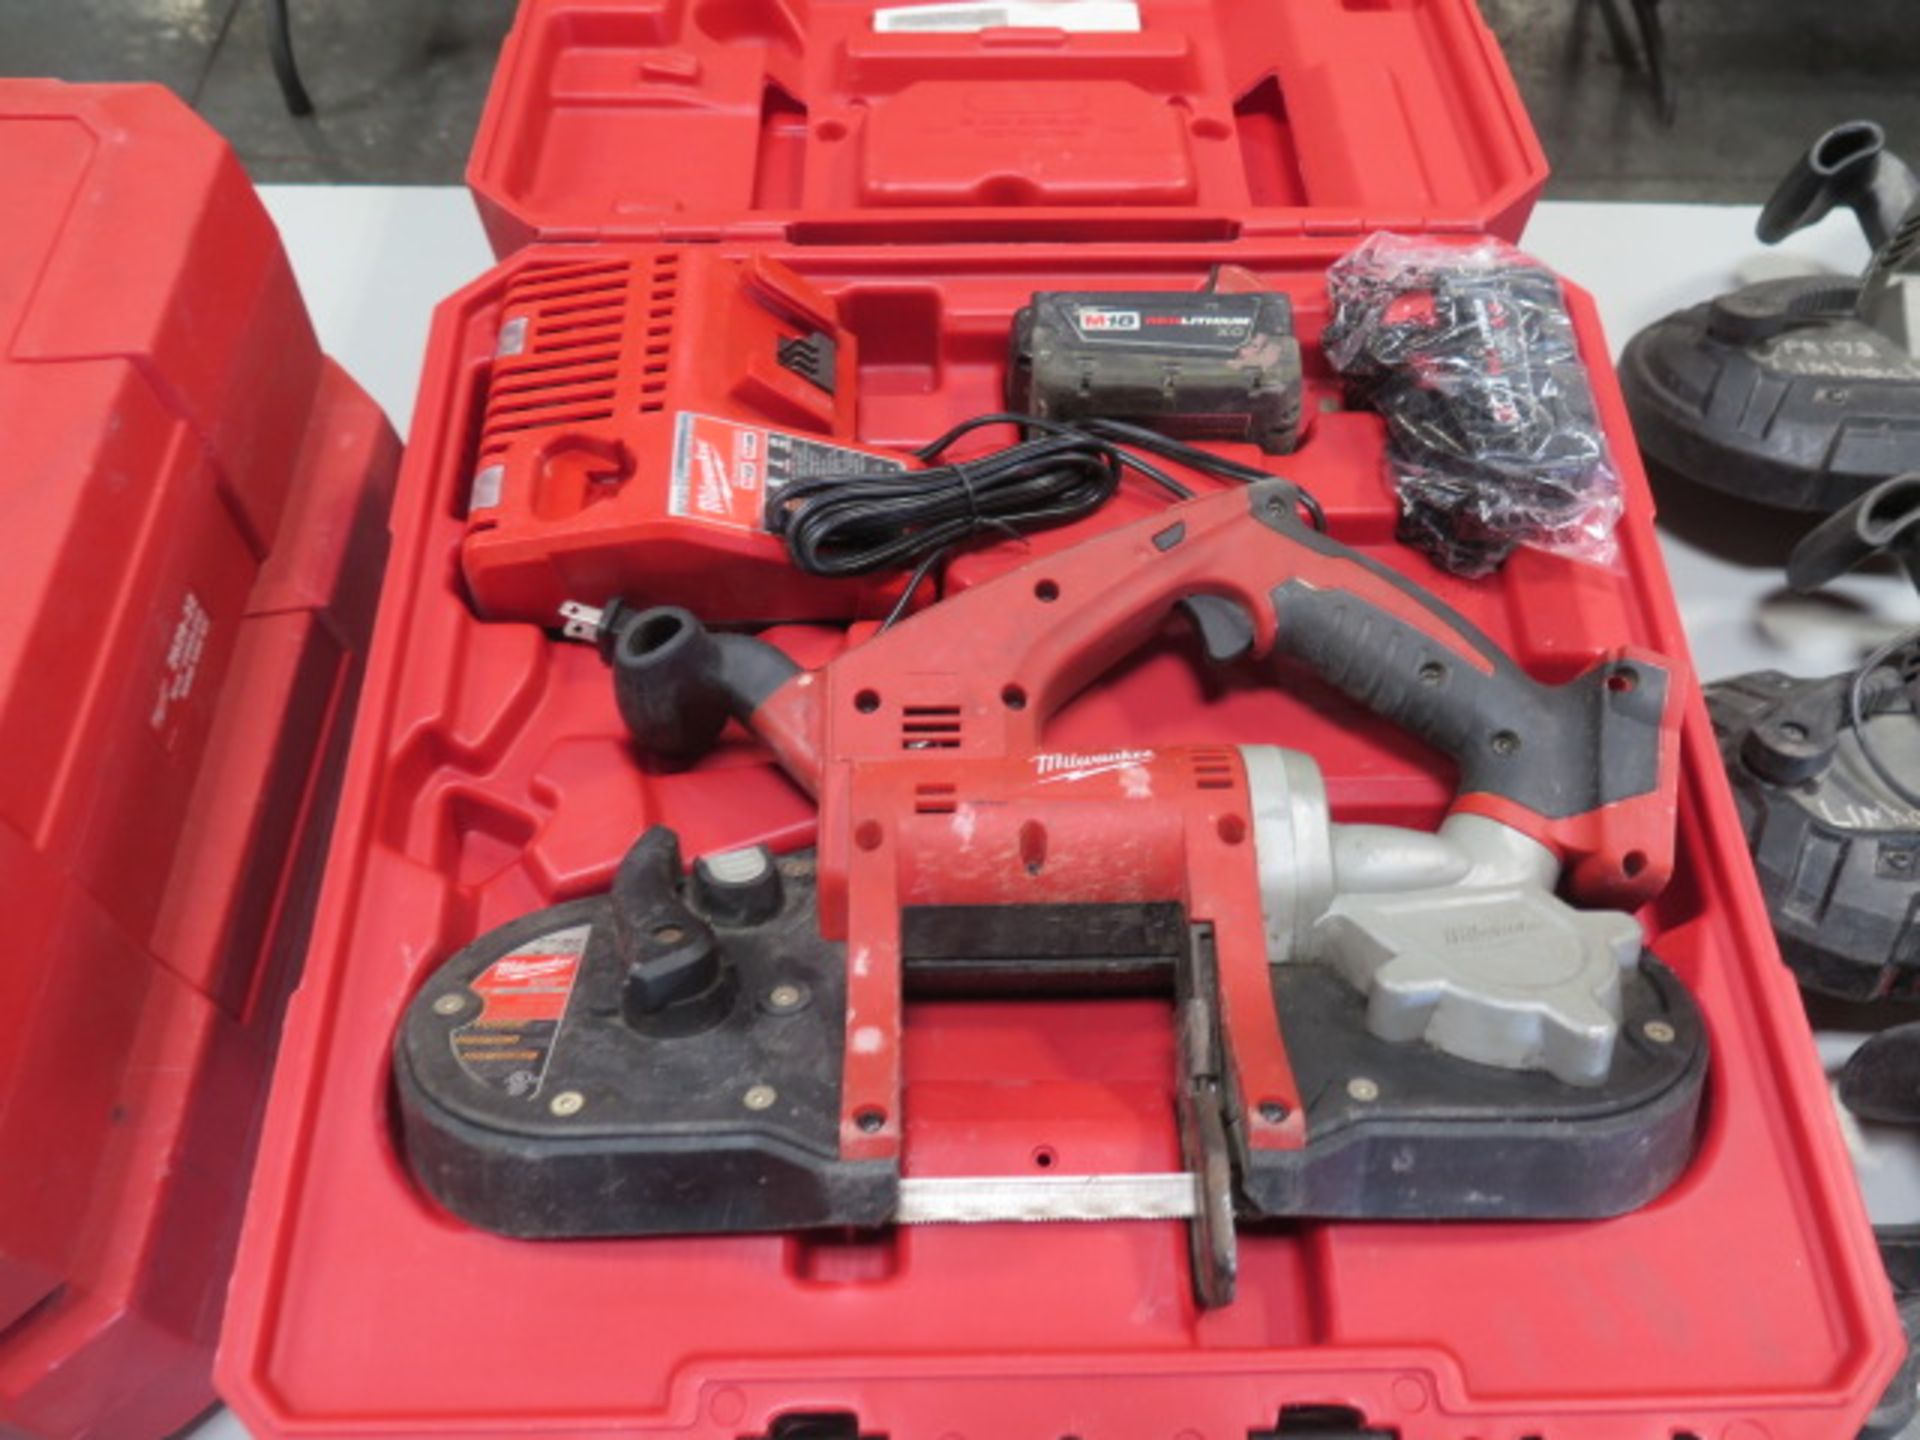 Milwaukee 18 Volt Compact Portable Band Saw Sets (2) (SOLD AS-IS - NO WARRANTY) - Image 2 of 10